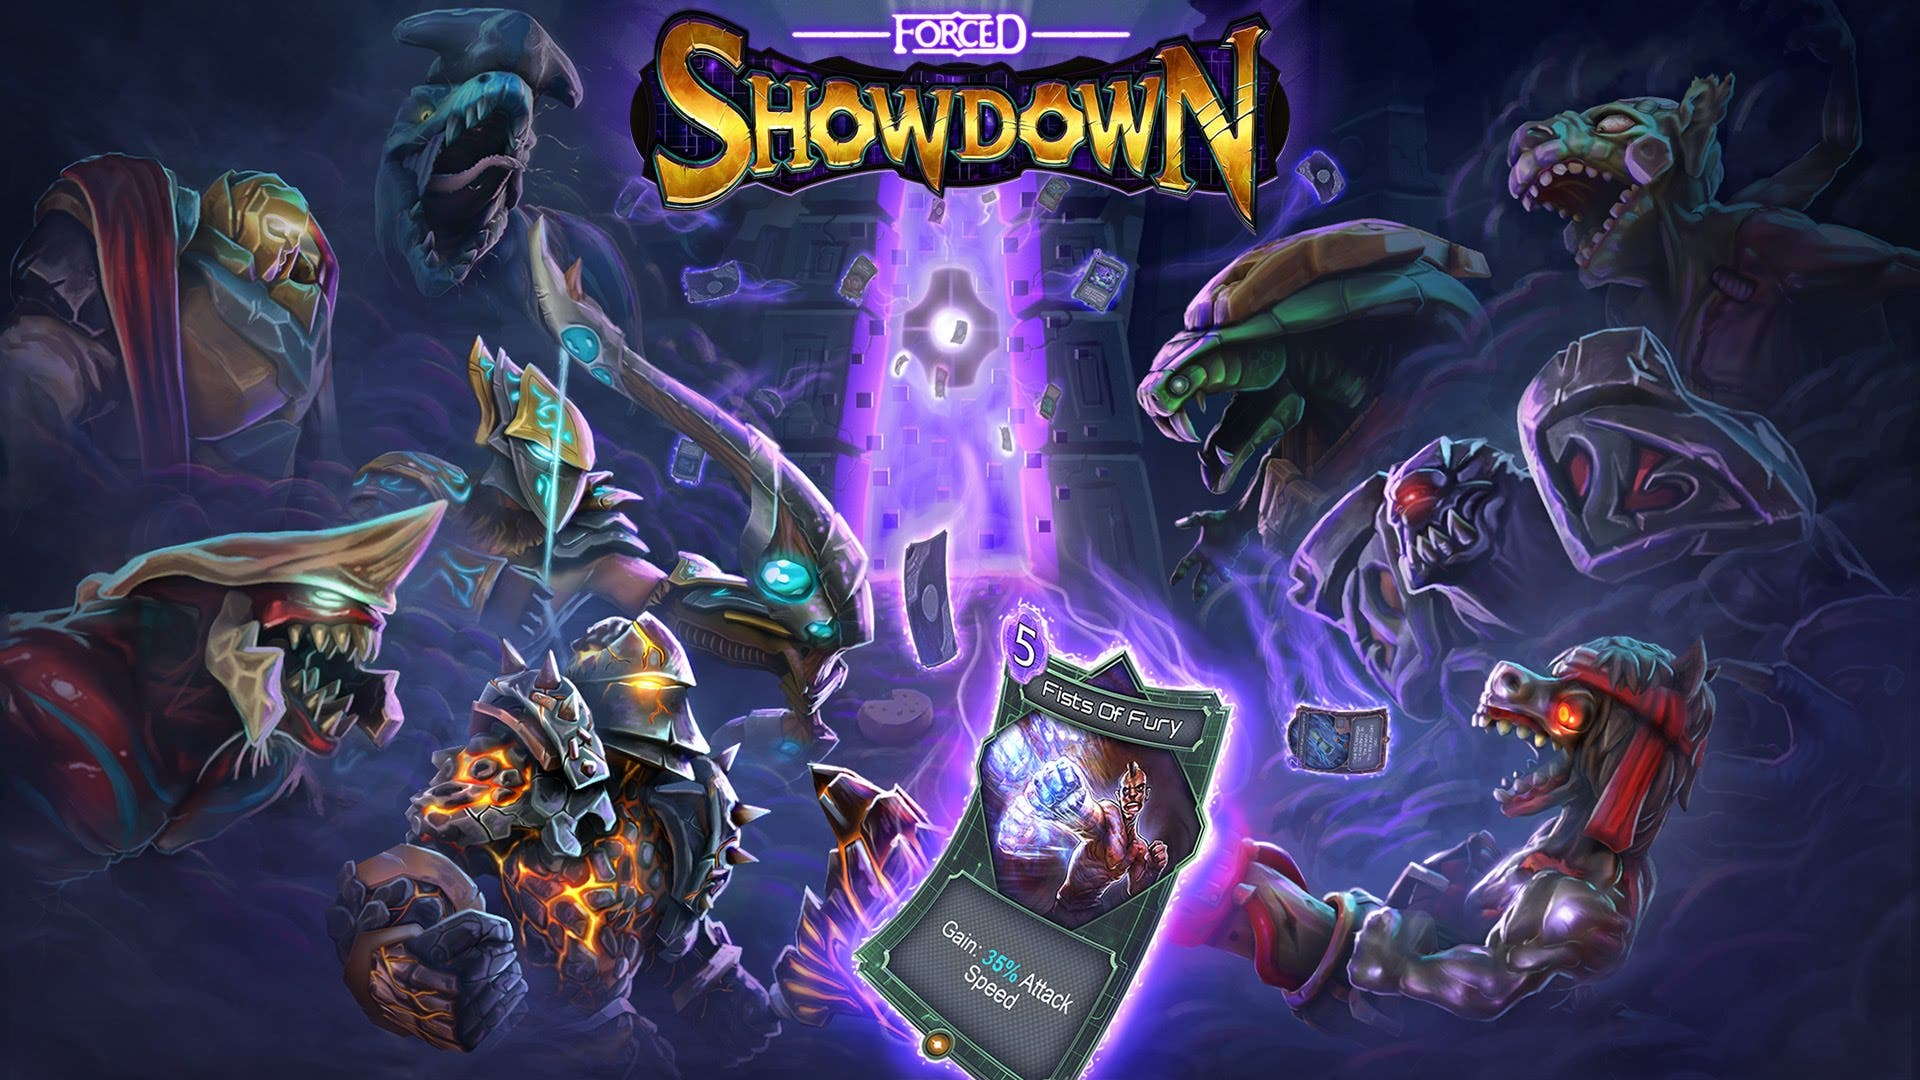 forced showdown is now available